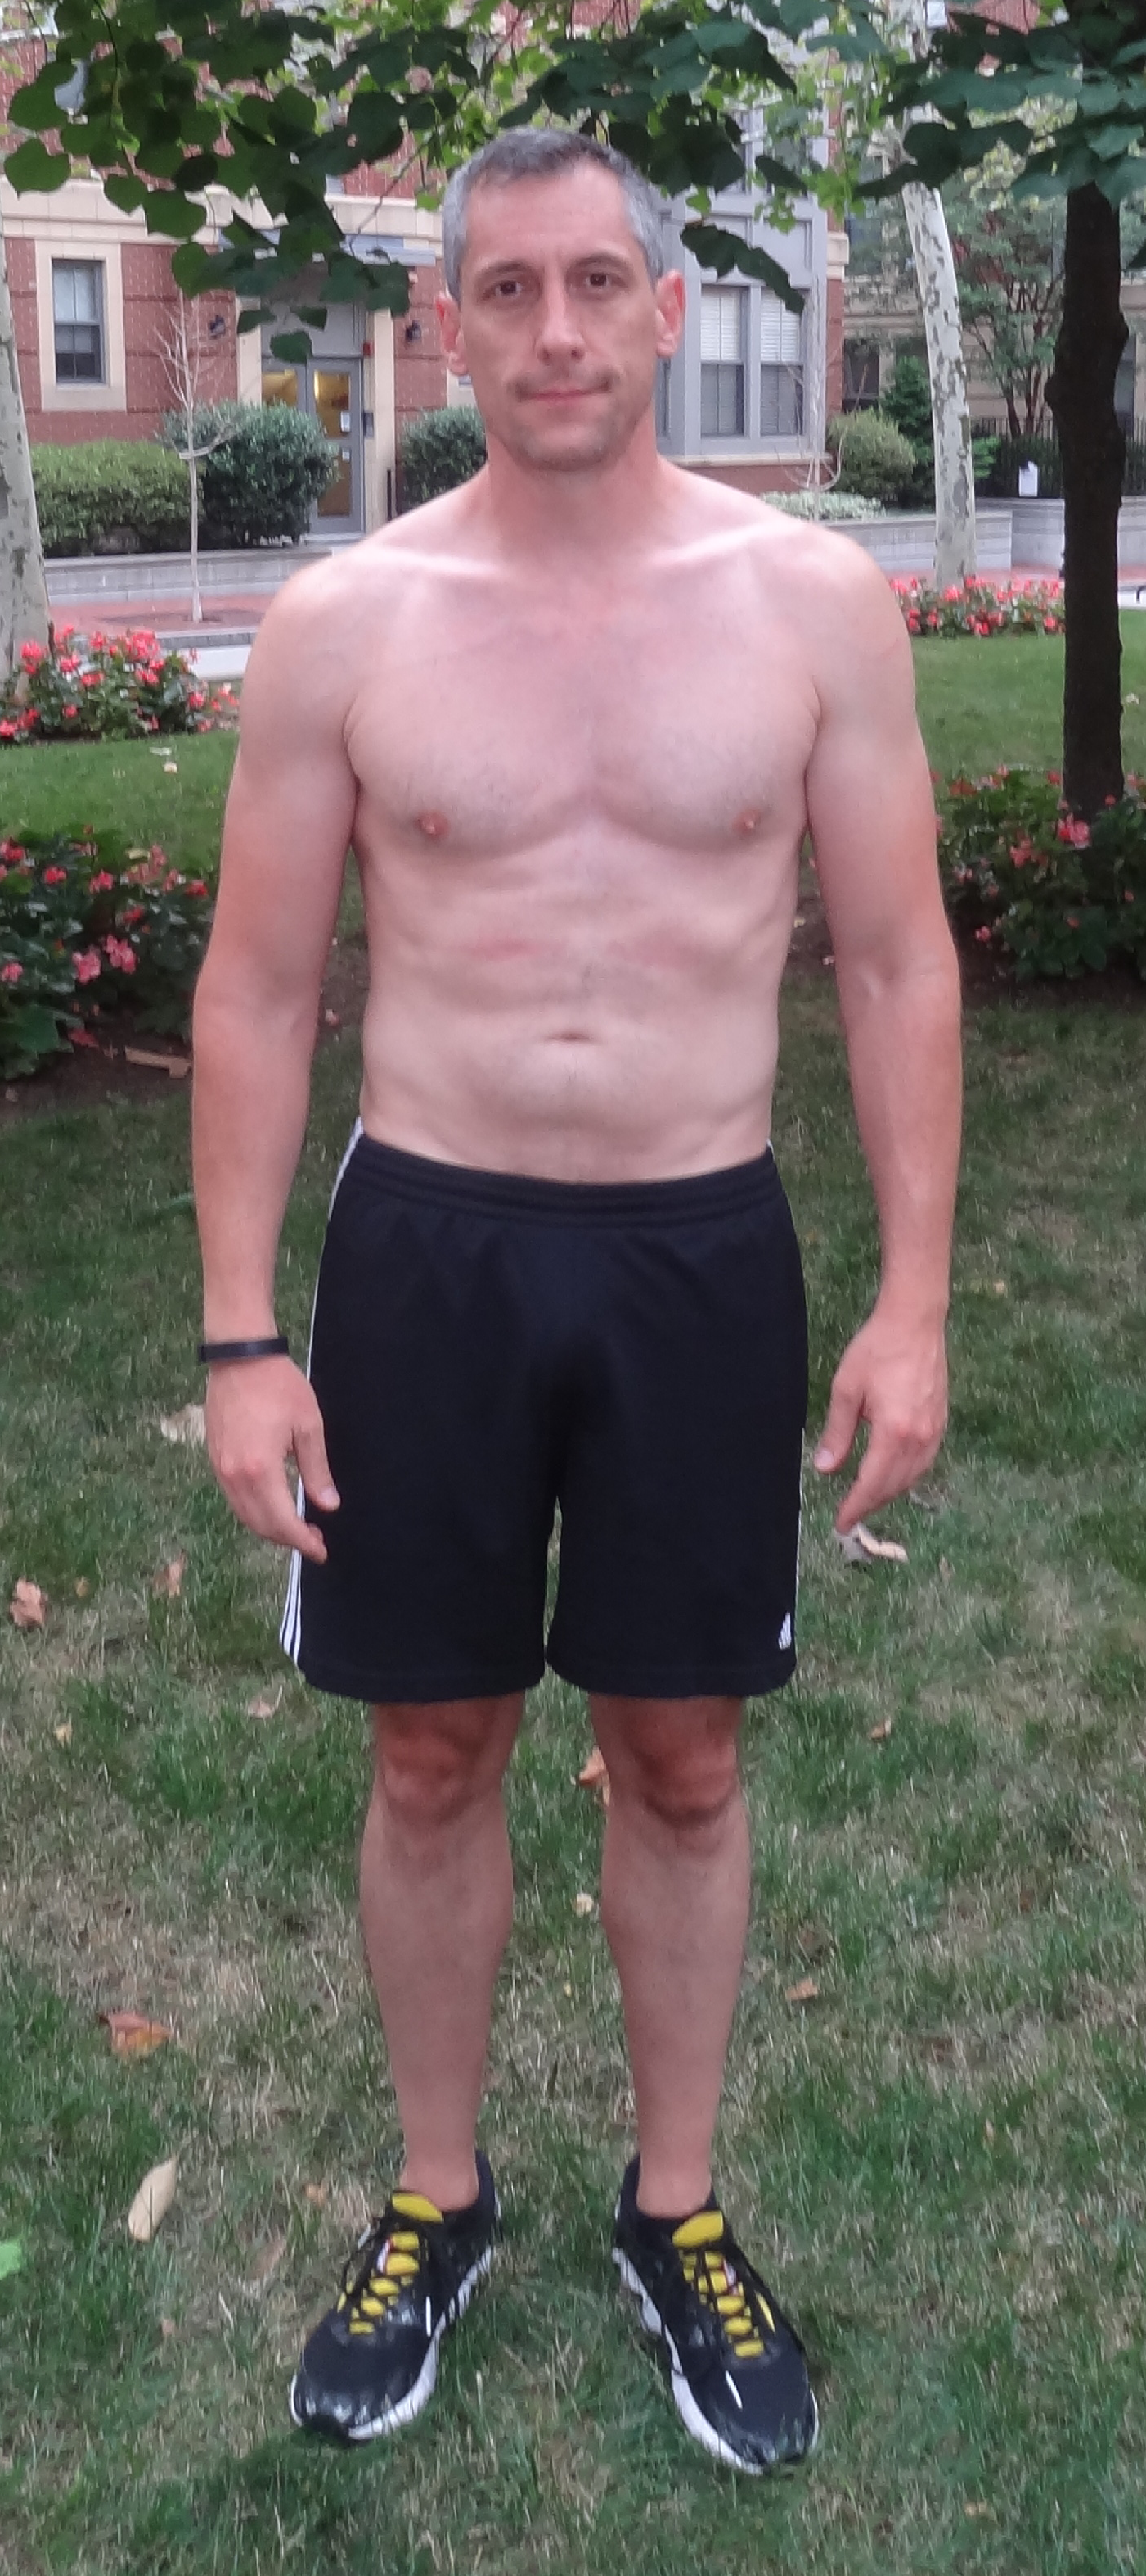 Dad Bod in the making